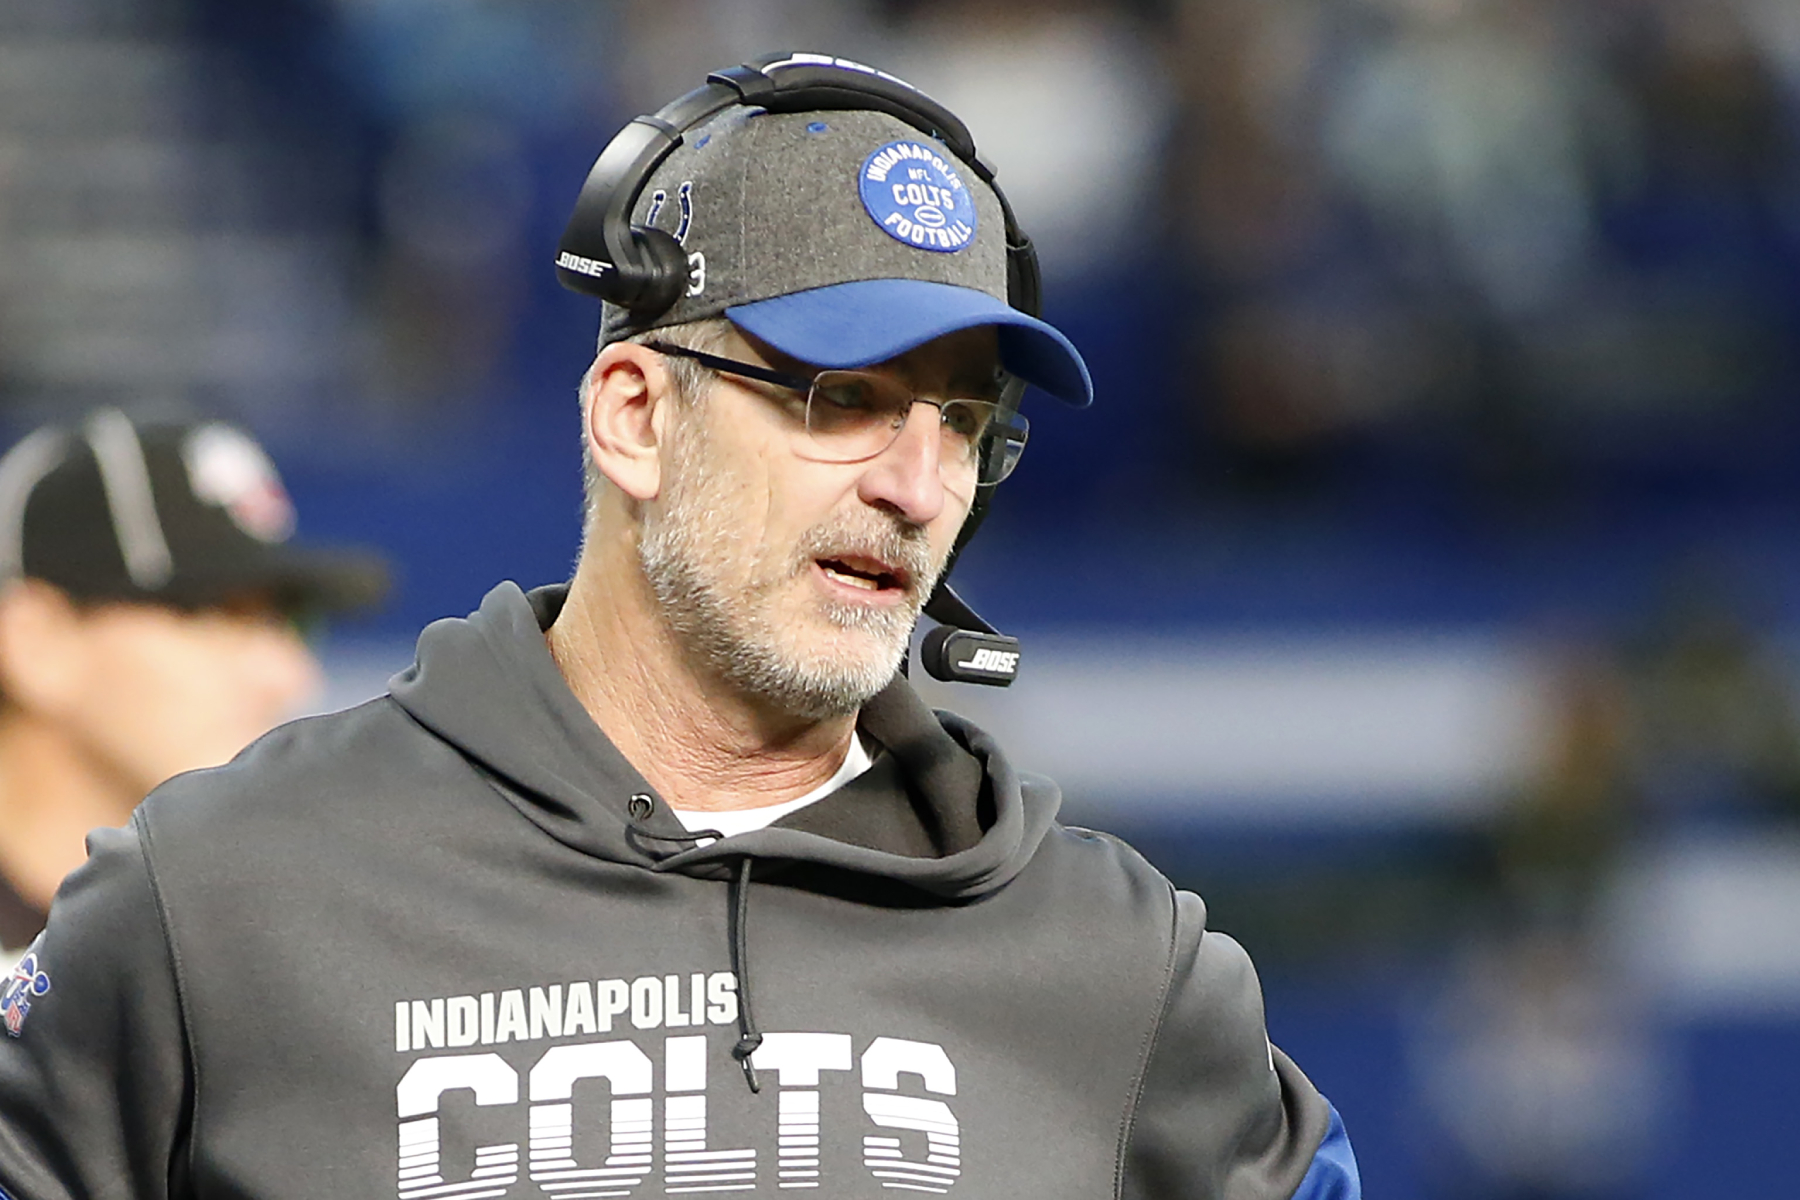 The Indianapolis Colts play the Chicago Bears on Sunday. Colts coach Frank Reich just sent the Bears a strong message ahead of the game.